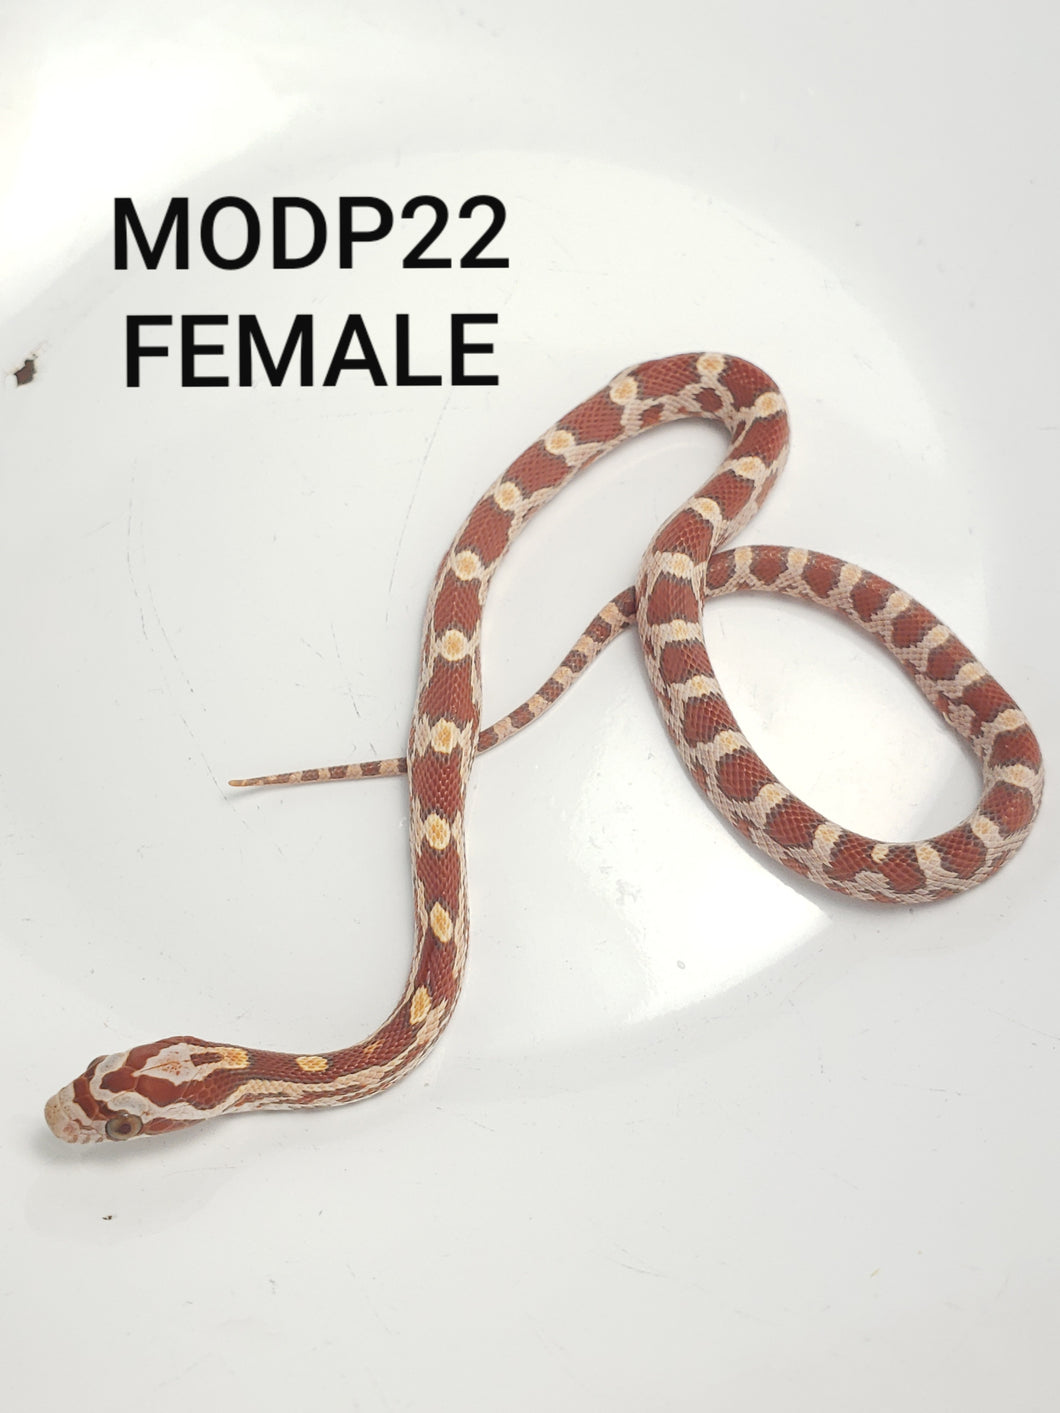 Ultramel het. Diffused ph Caramel Corn Snake Female